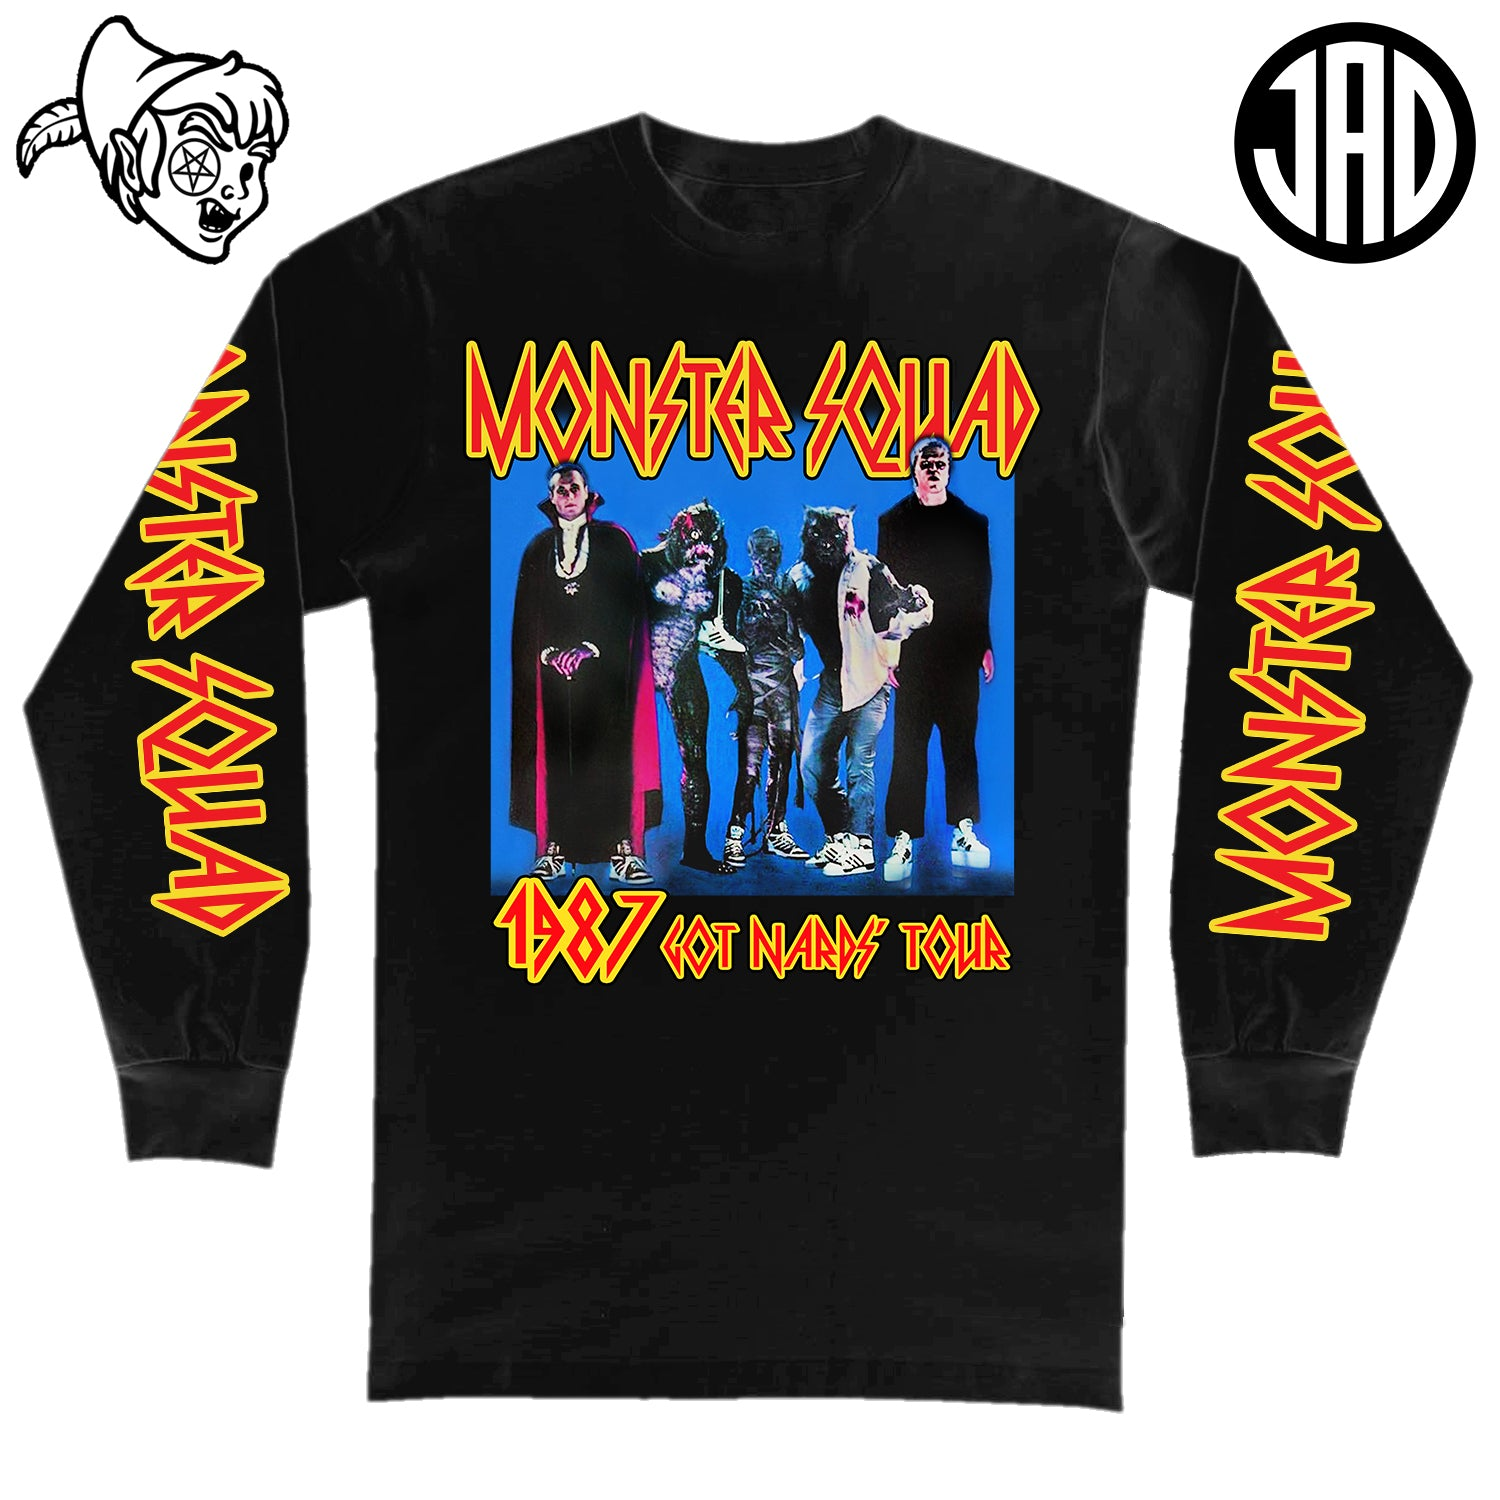 1987 Got Nards Tour - Men's (Unisex) Long Sleeve Tee